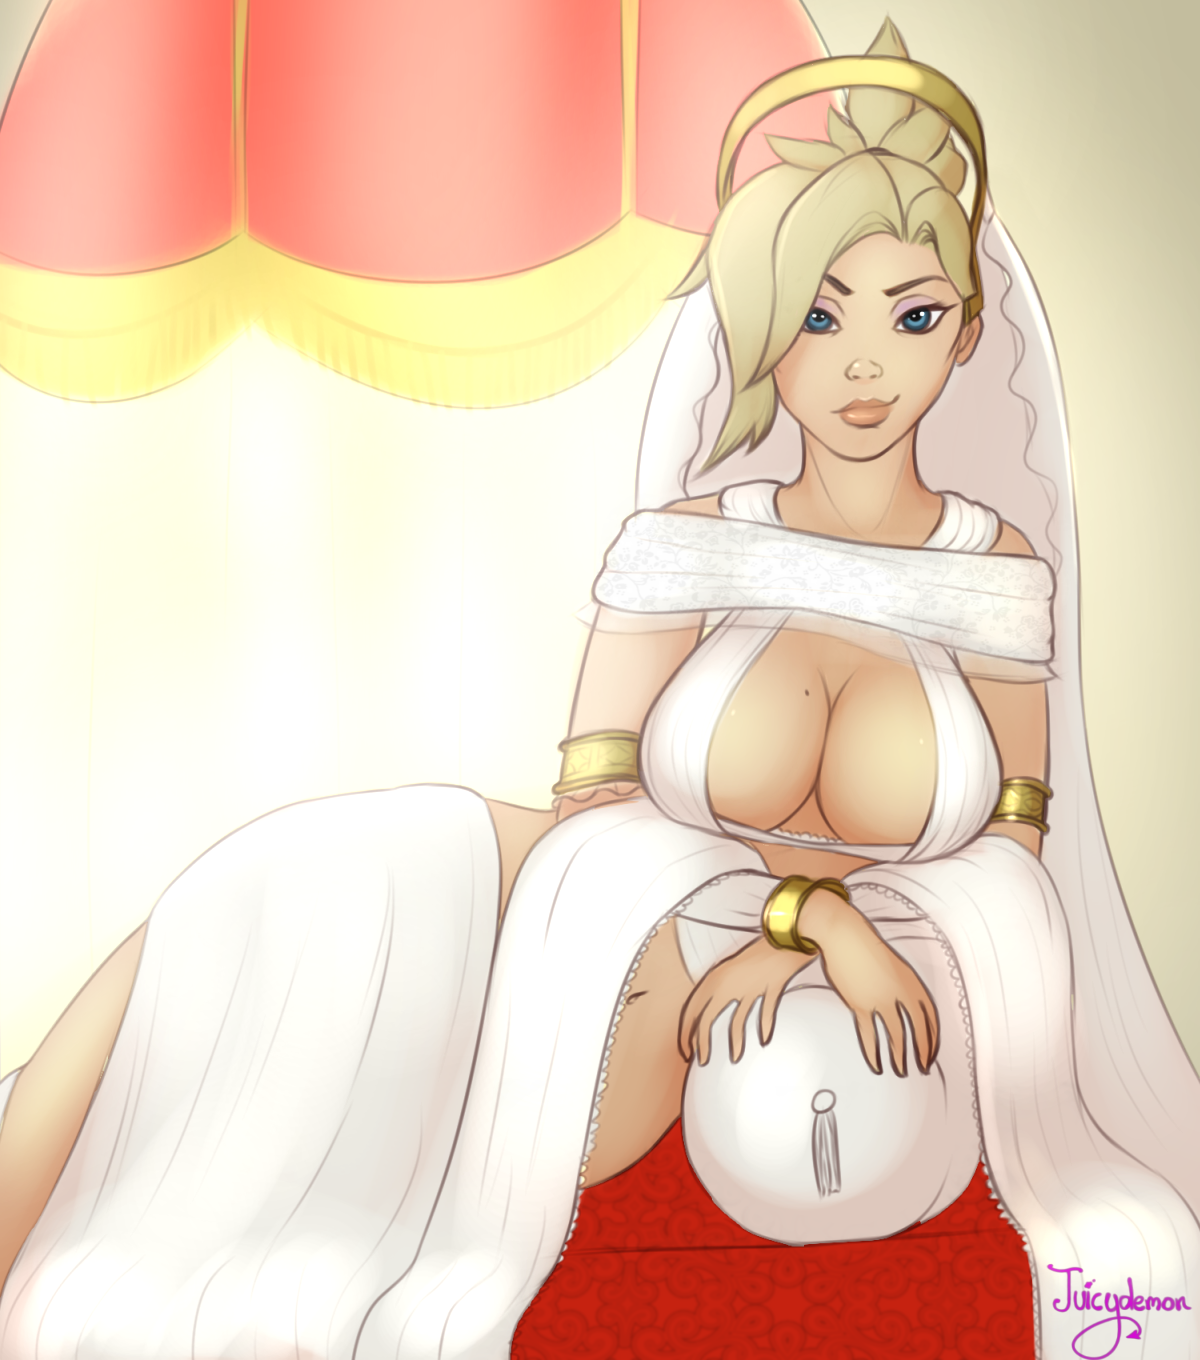 Mercy, Princess of Sunlight